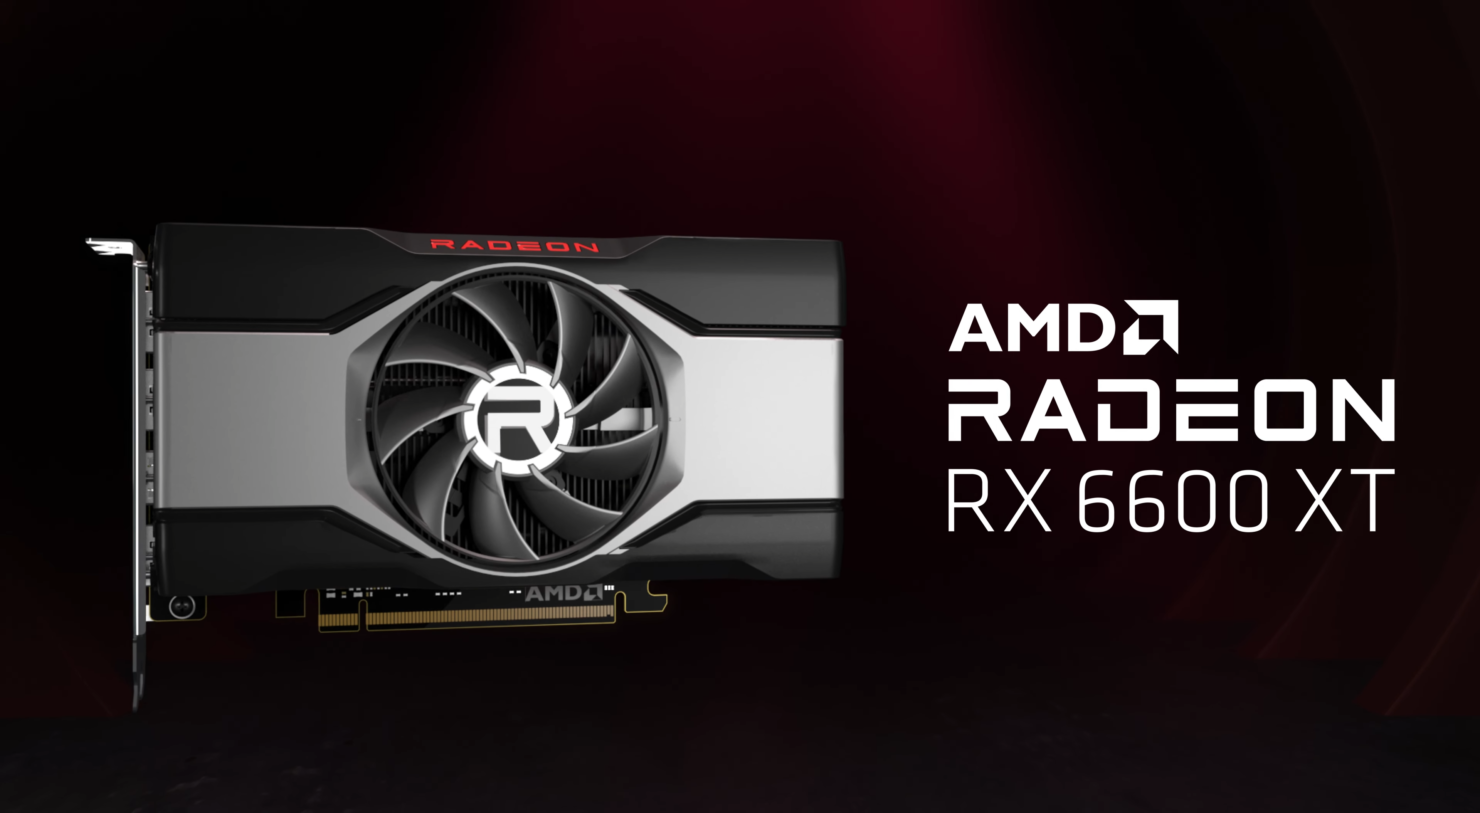 amd-radeon-rx-6600-xt-could-be-the-next-mining-king,-insane-cryptocurrency-performance-of-32-mh/s-at-just-55w-reported